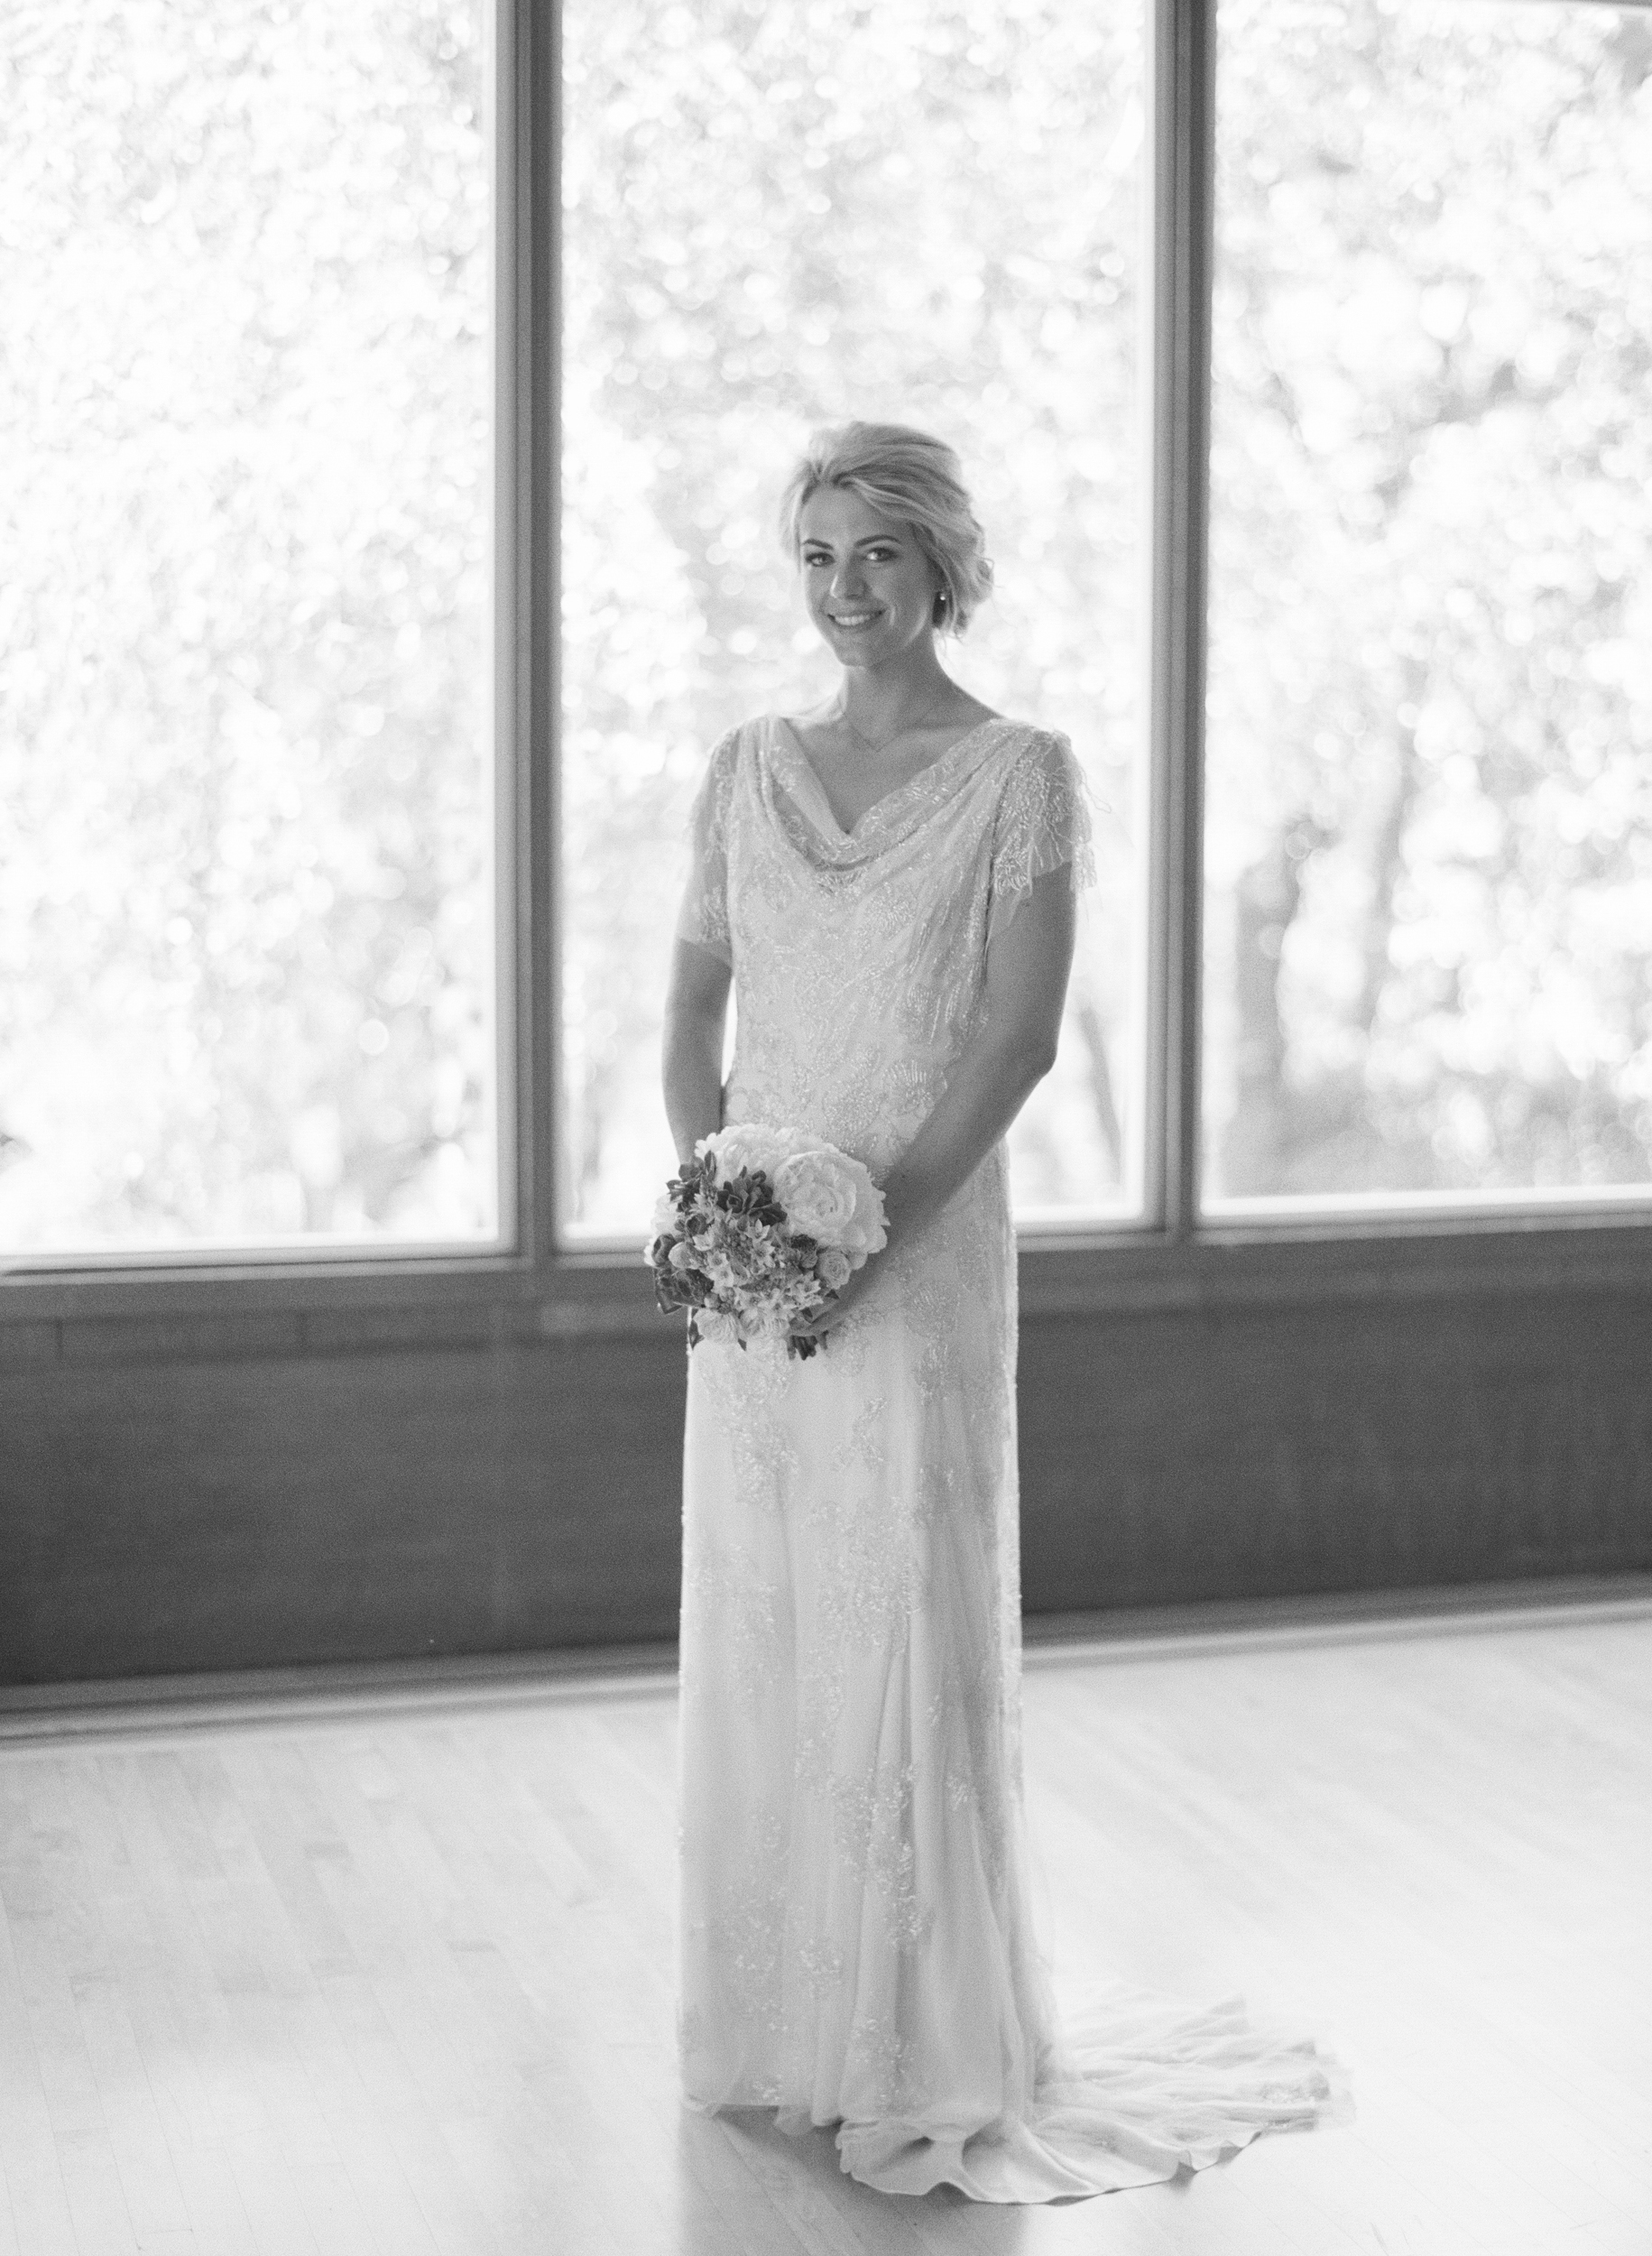 The bride stands in an elegantly draped, lace sheath dress before the wedding, photo by Sylvie Gil